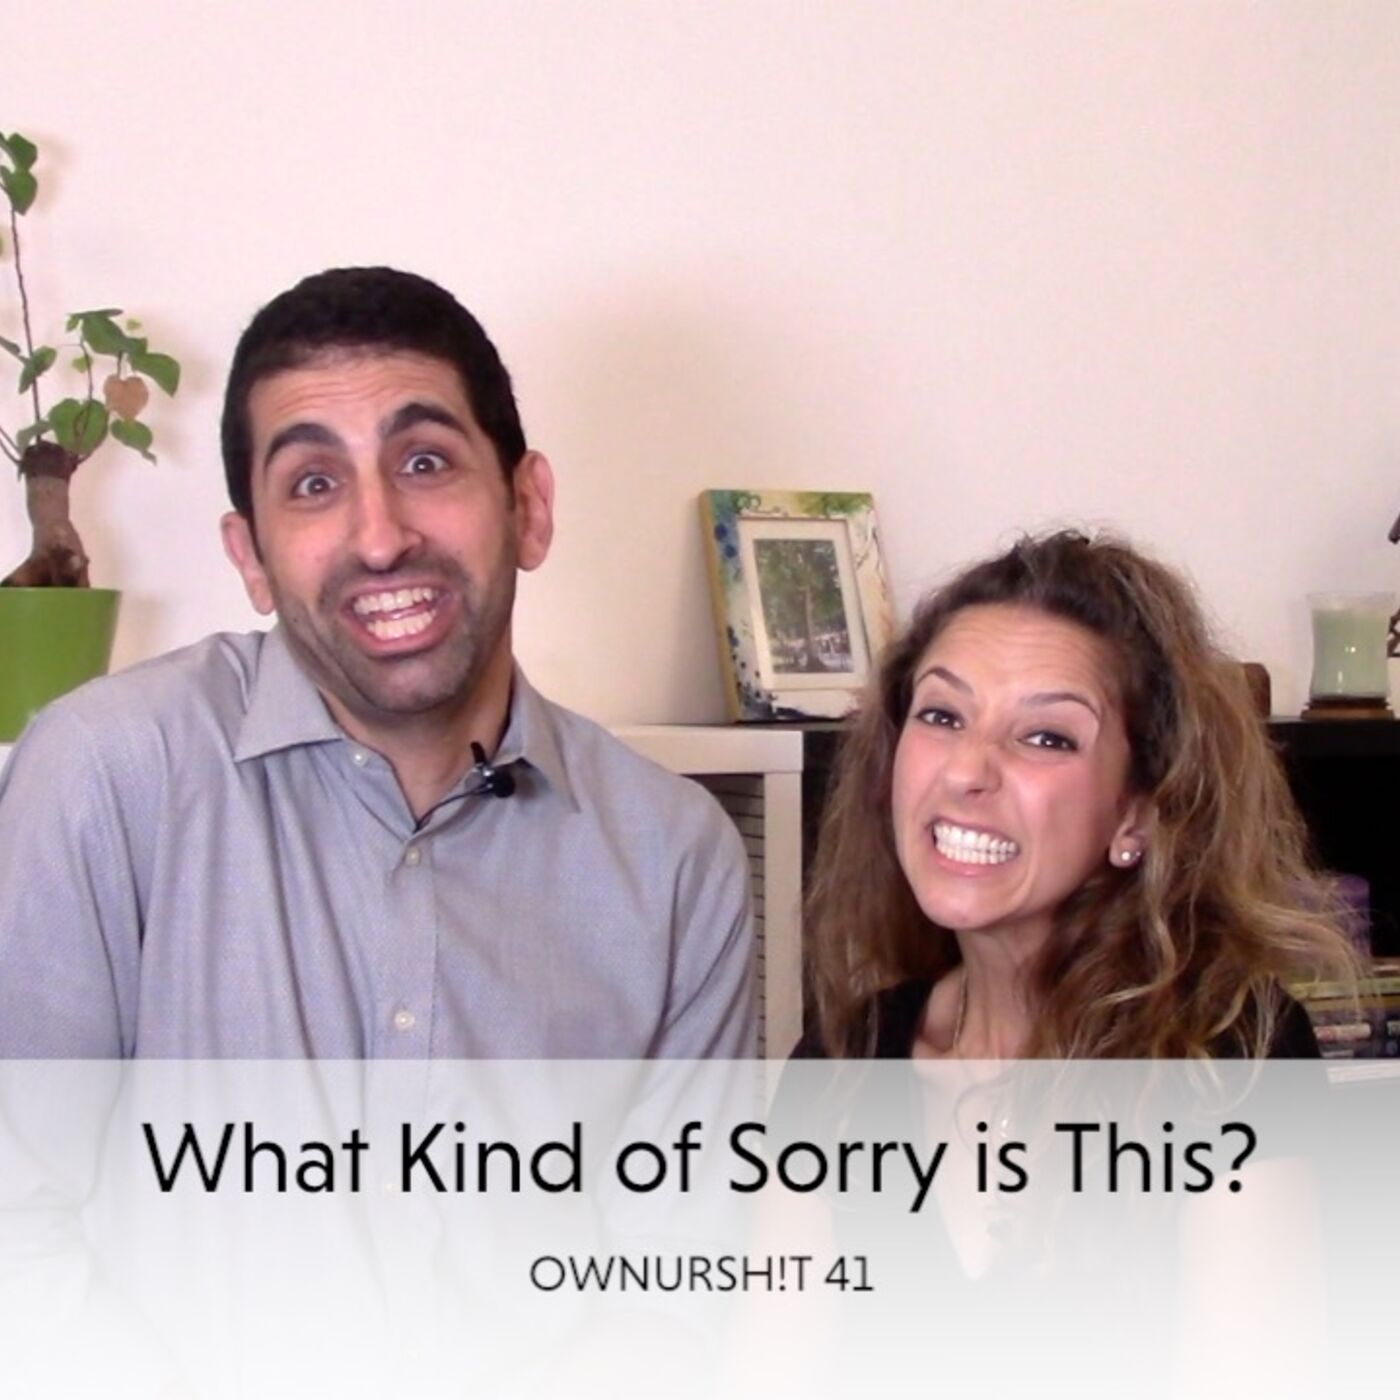 OWNURSH!T 41 - What Kind of Sorry is This?